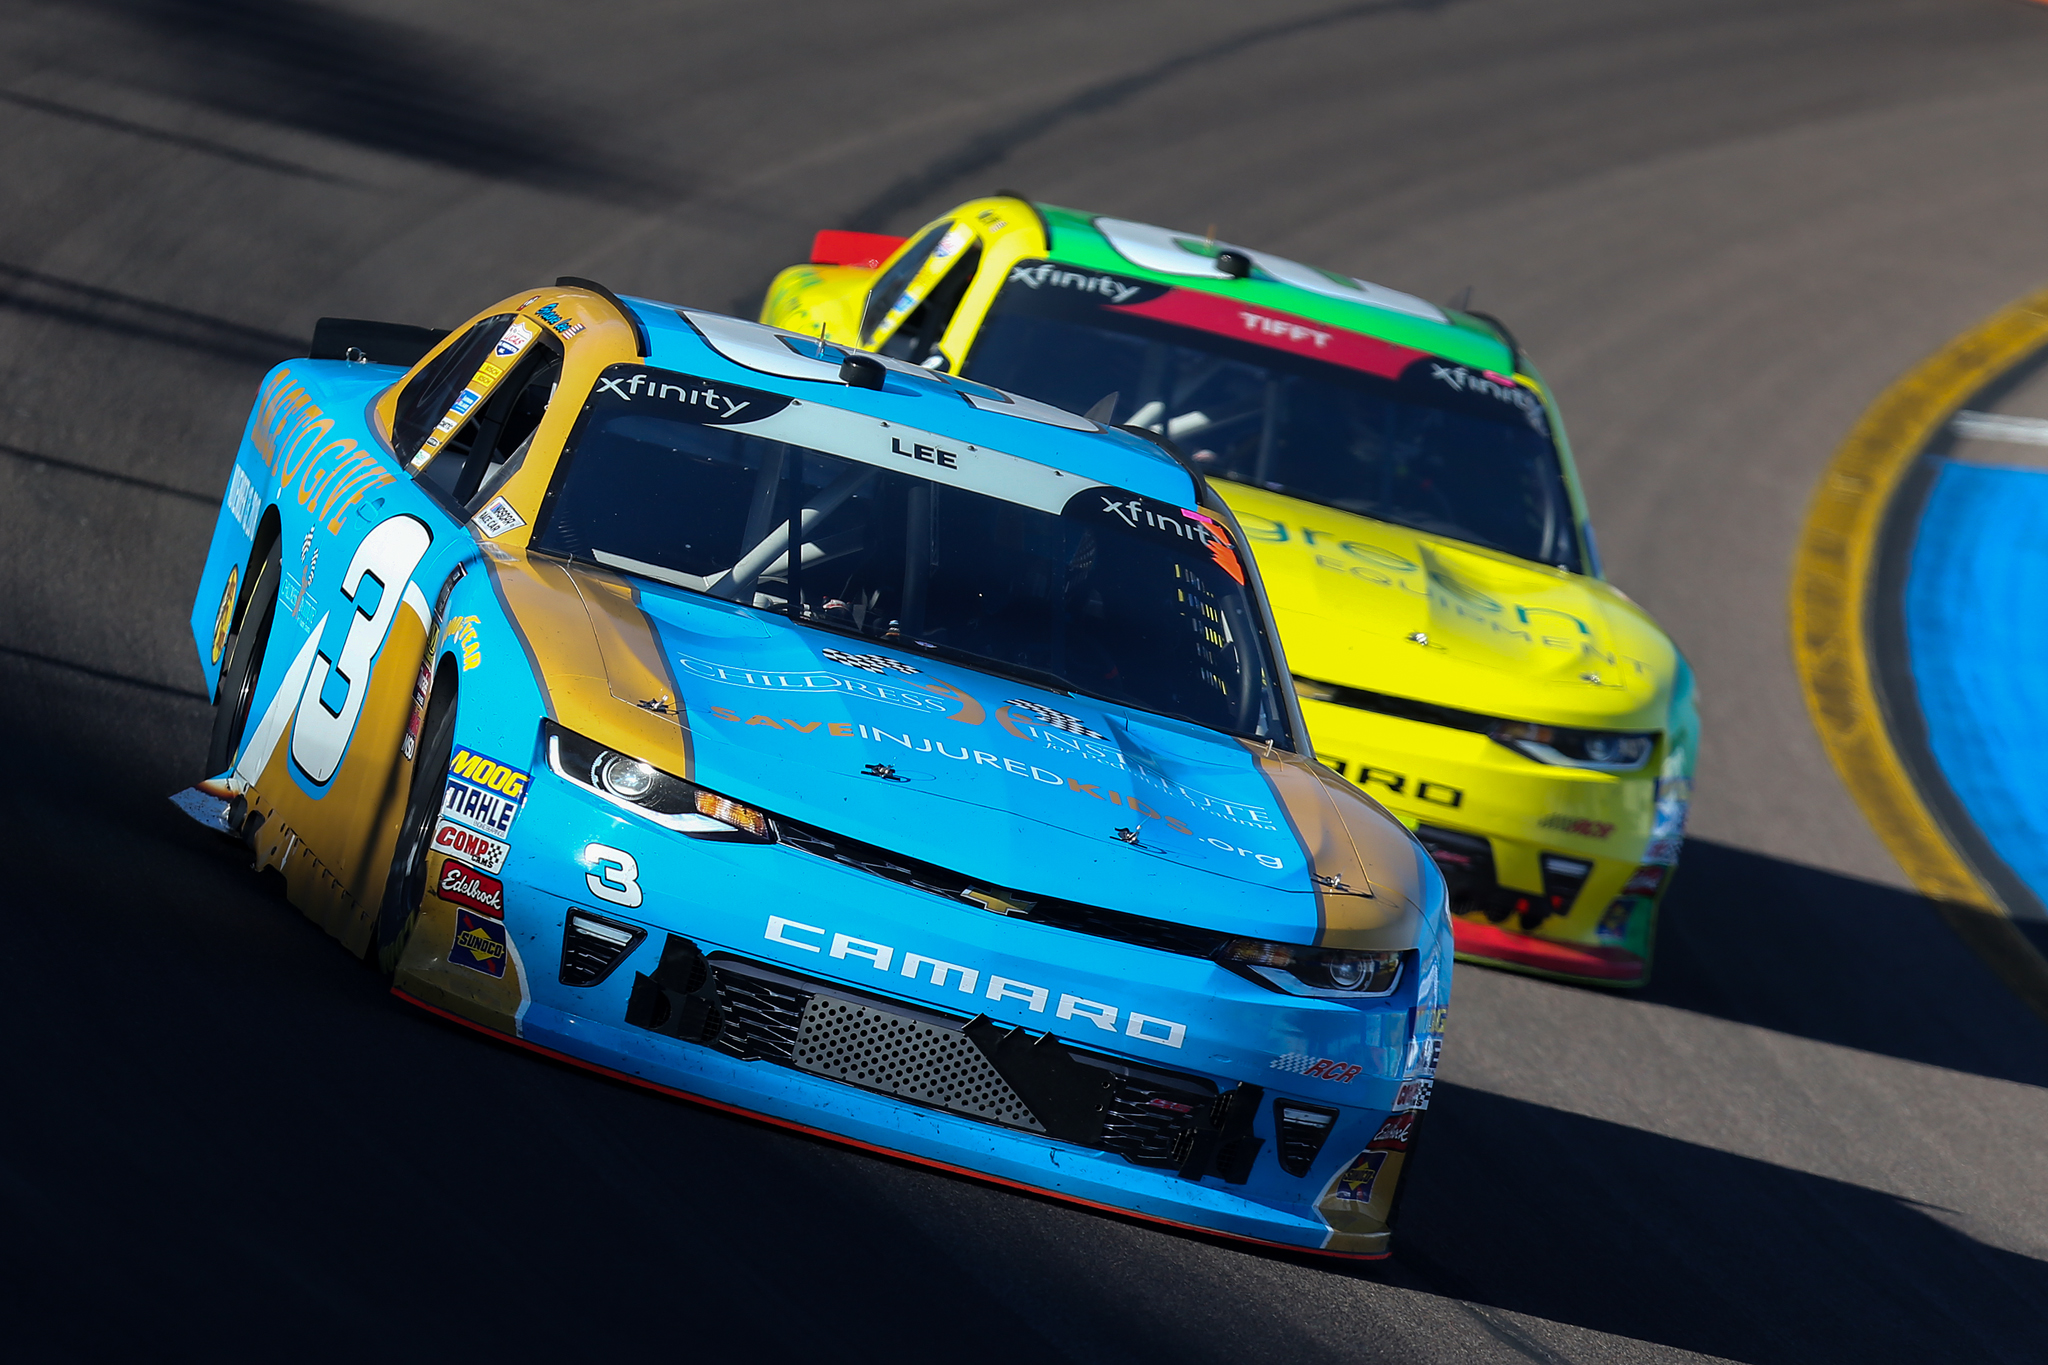 Whelen Trusted To Perform 200 - ISM Raceway